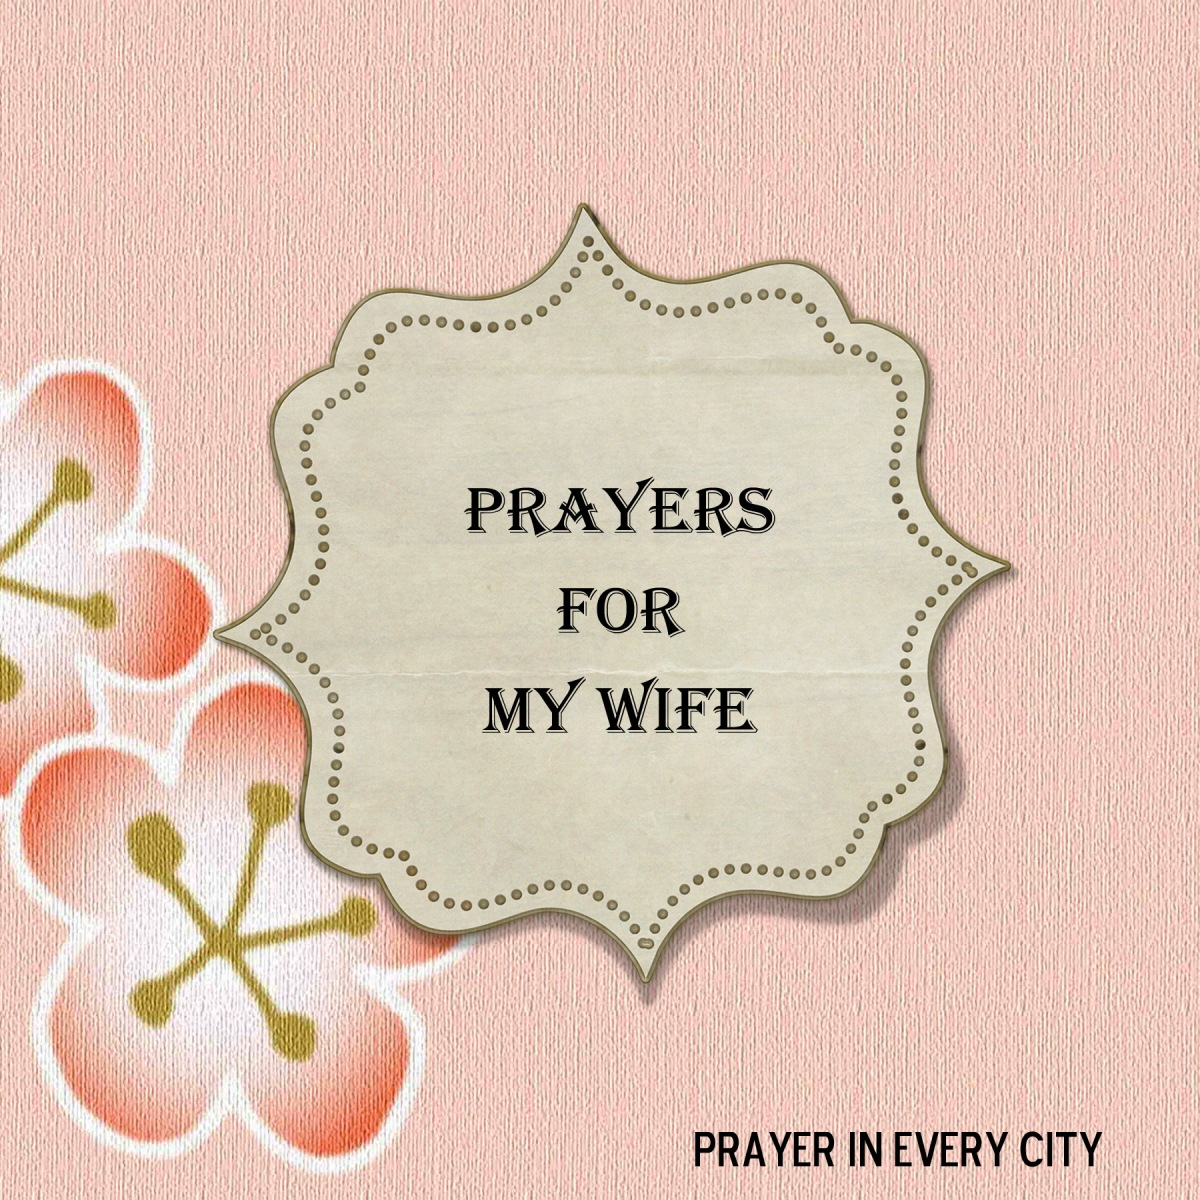 10 Prayers for My Wife